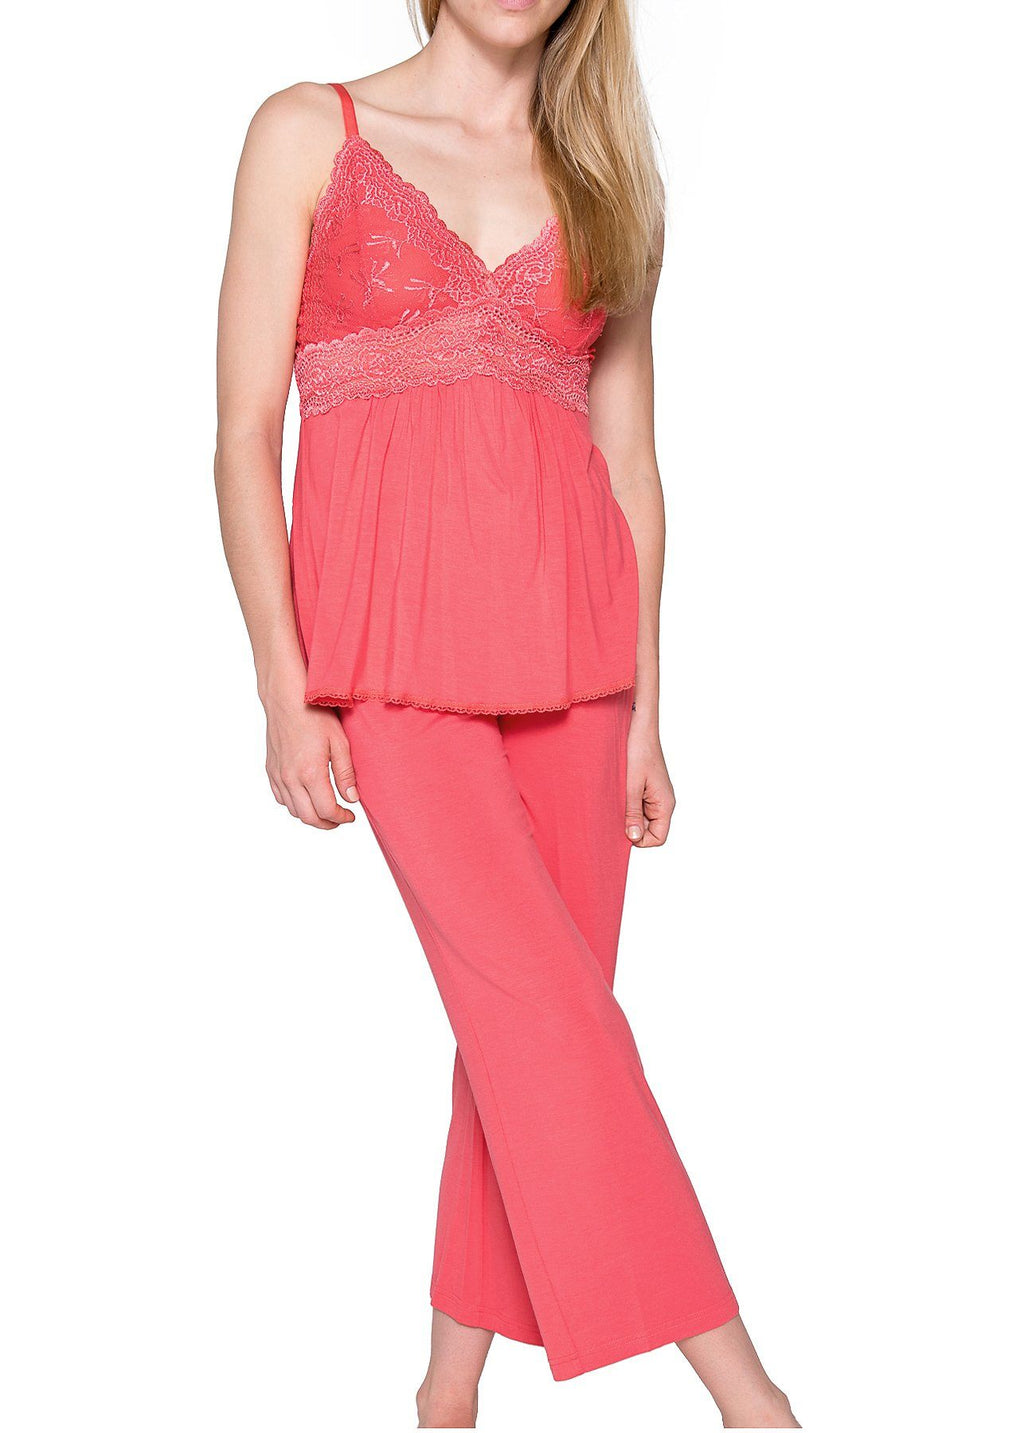 Bliss Pajama - Persimmon Mystique Intimates